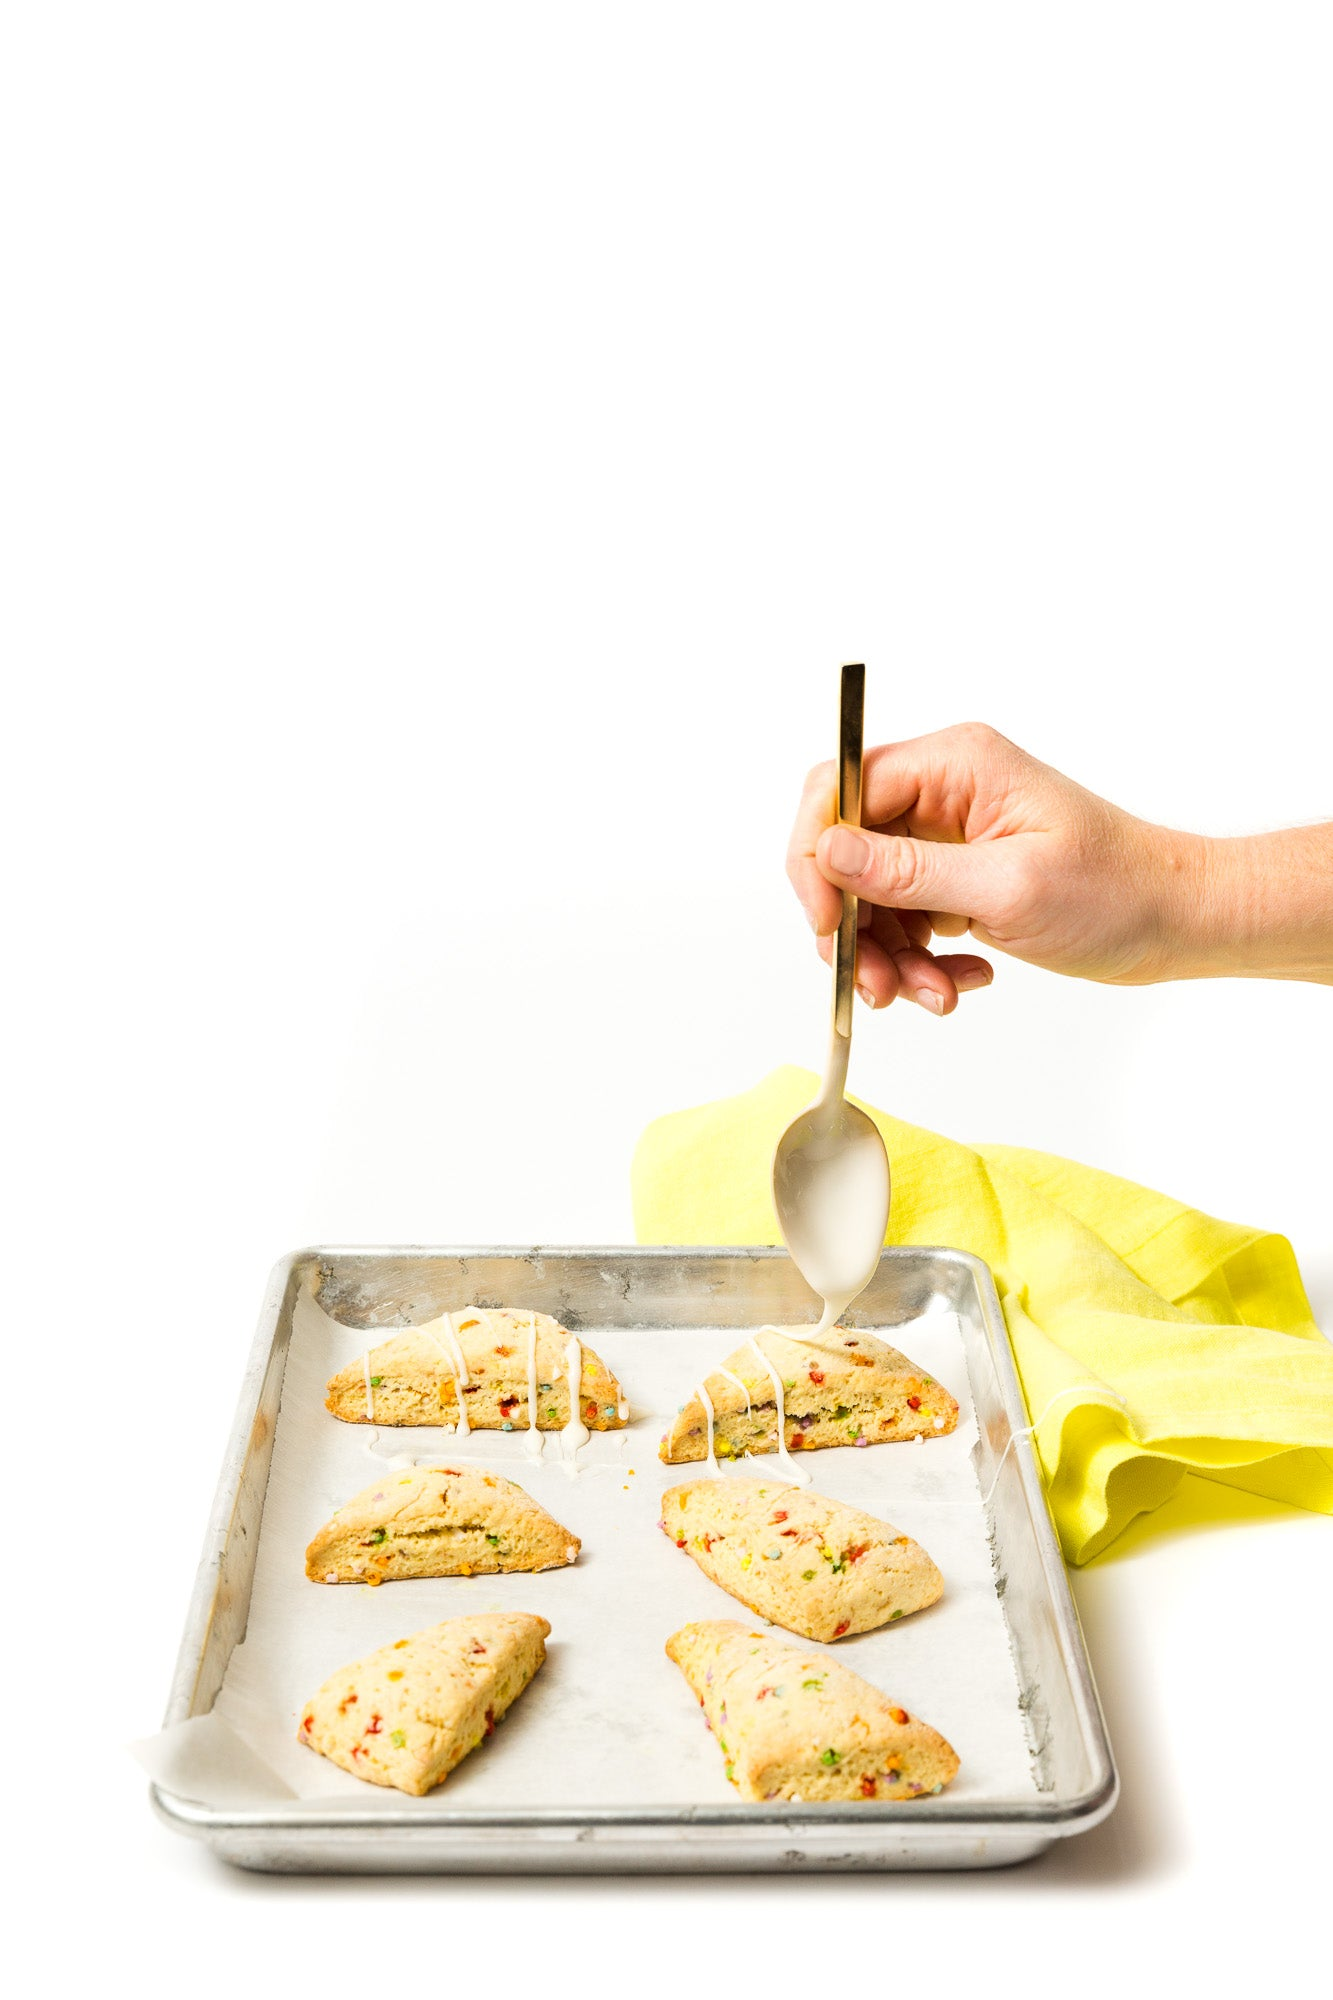 Image of hand glazing six Miss Jones Baking Co Confetti Pop Cookie Mix Sprinkle Scones on a baking sheet